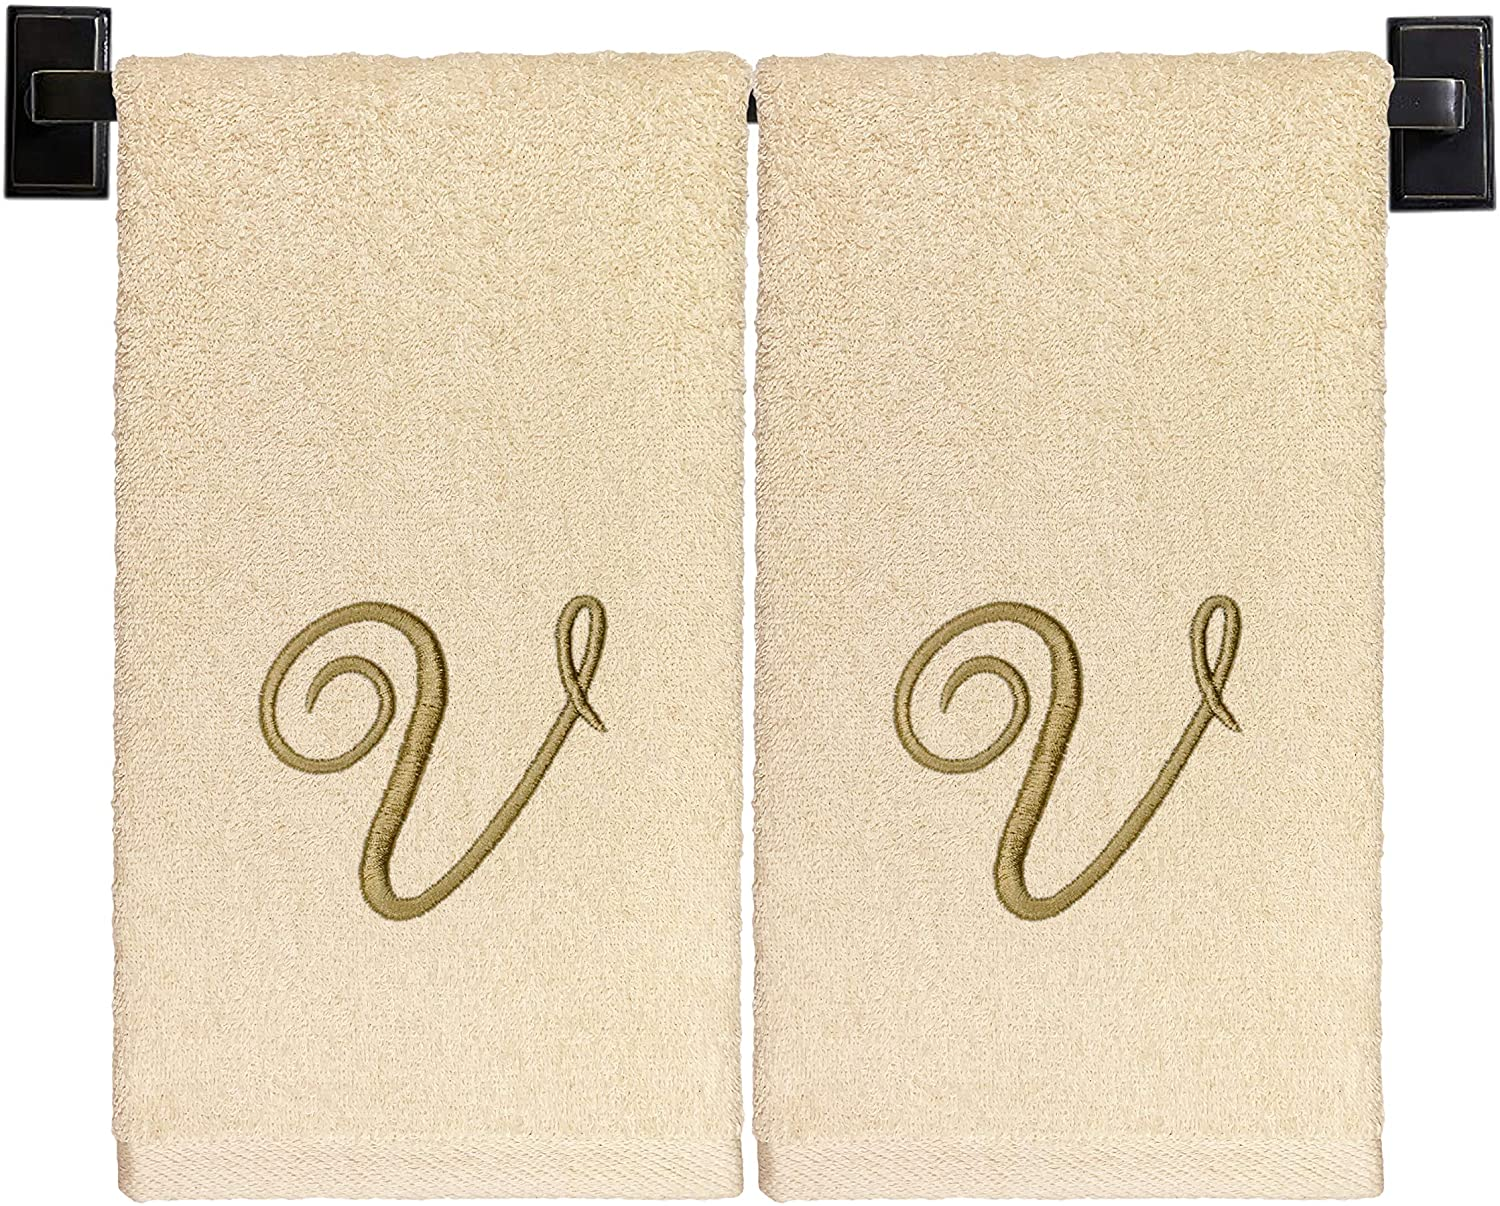 Monogrammed Hand Towels, Set of 2, 100% Cotton, Made in USA, Luxury Hotel Quality, Embroidered Gold Thread Script Monogram